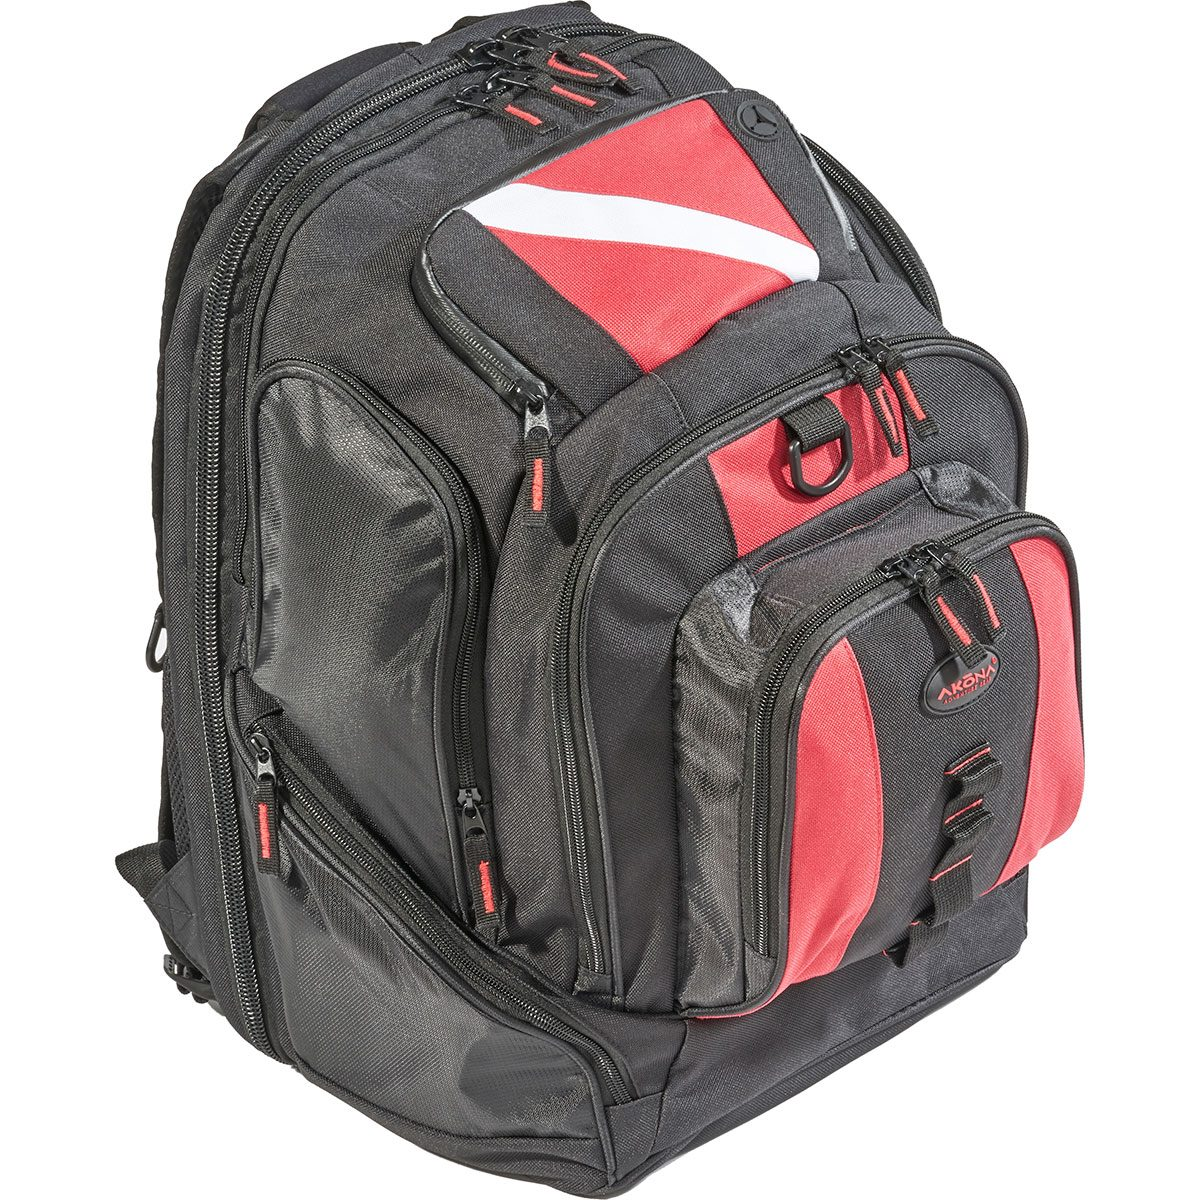 cd22ae6418c8 Akona Commuter Backpack - Dive flag (AKB897)